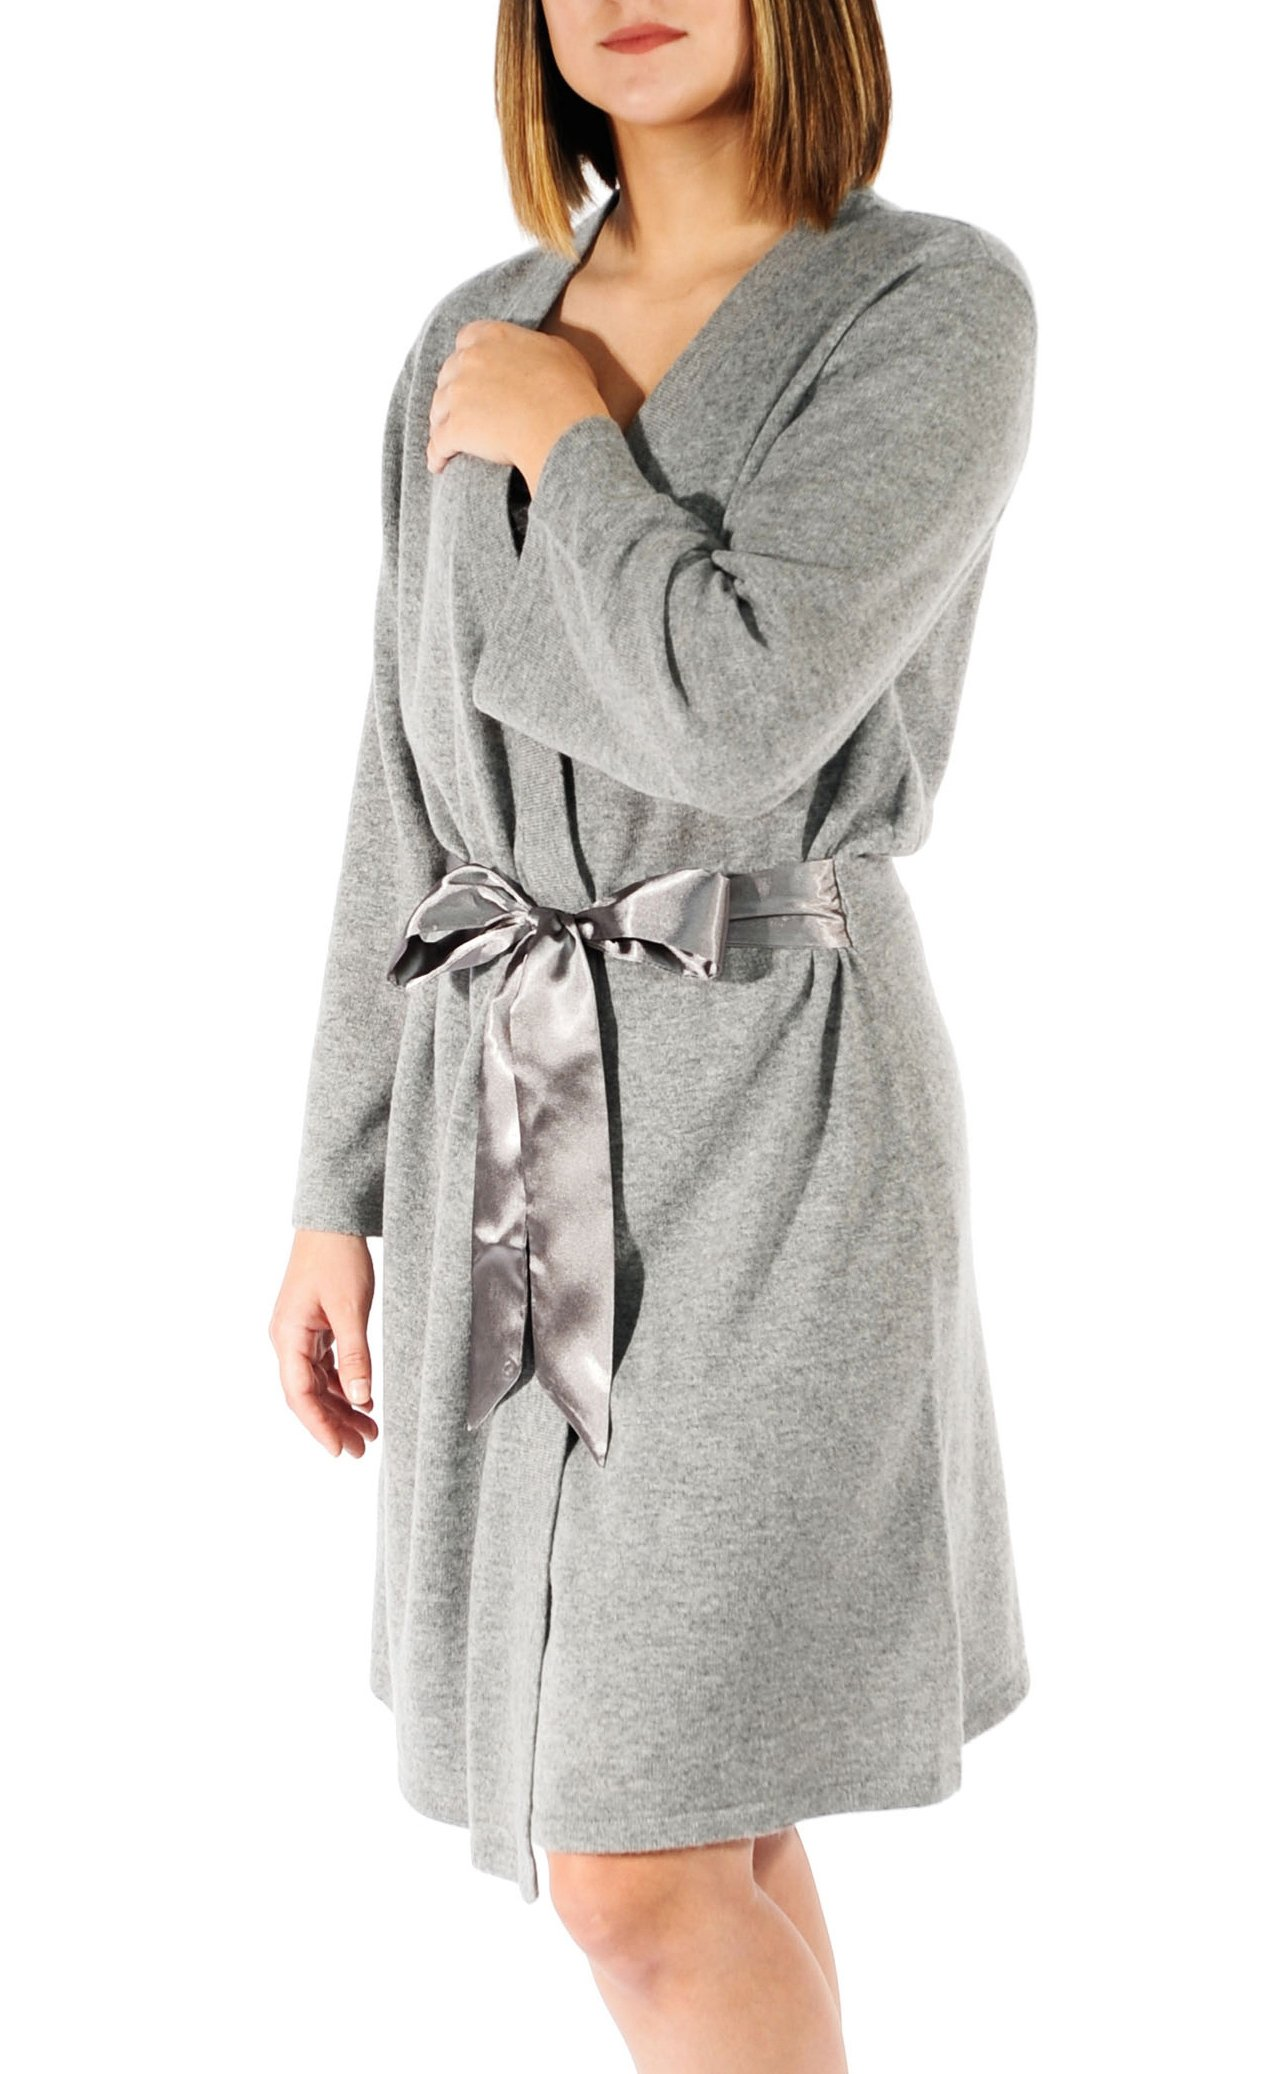 Gigi Reaume 100% Cashmere Women's Robe, Wrap Style, Satin Belt, Short Length (X-Large, Grey Heather) by Gigi Reaume